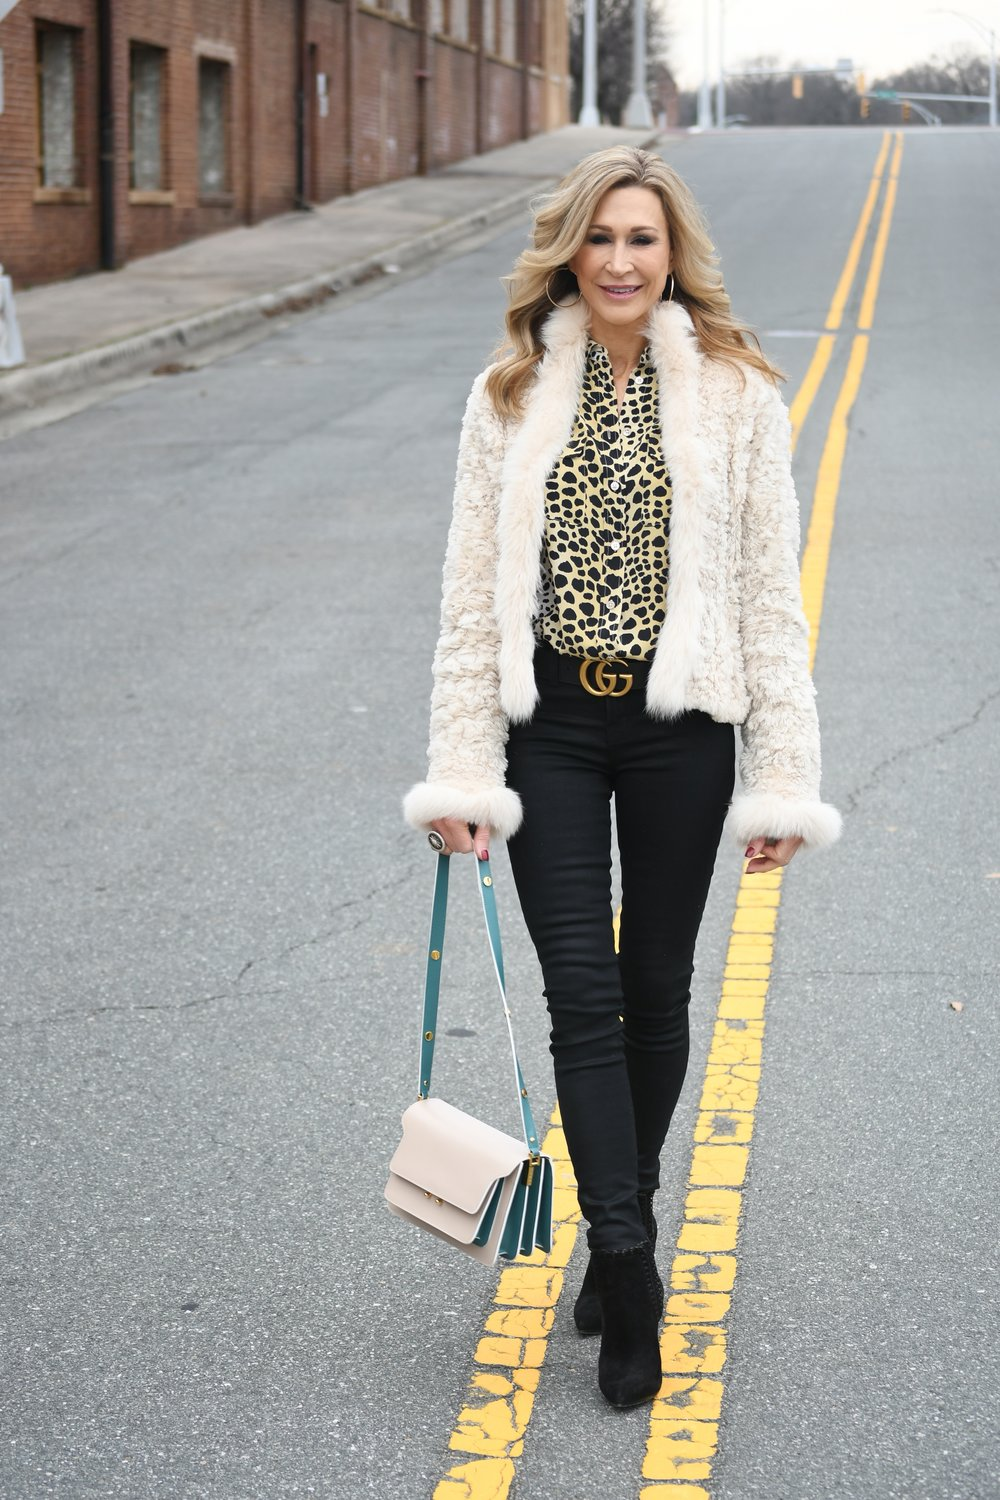 White Fur Jacket with Black jeans, Gucci Belt and Marni bag